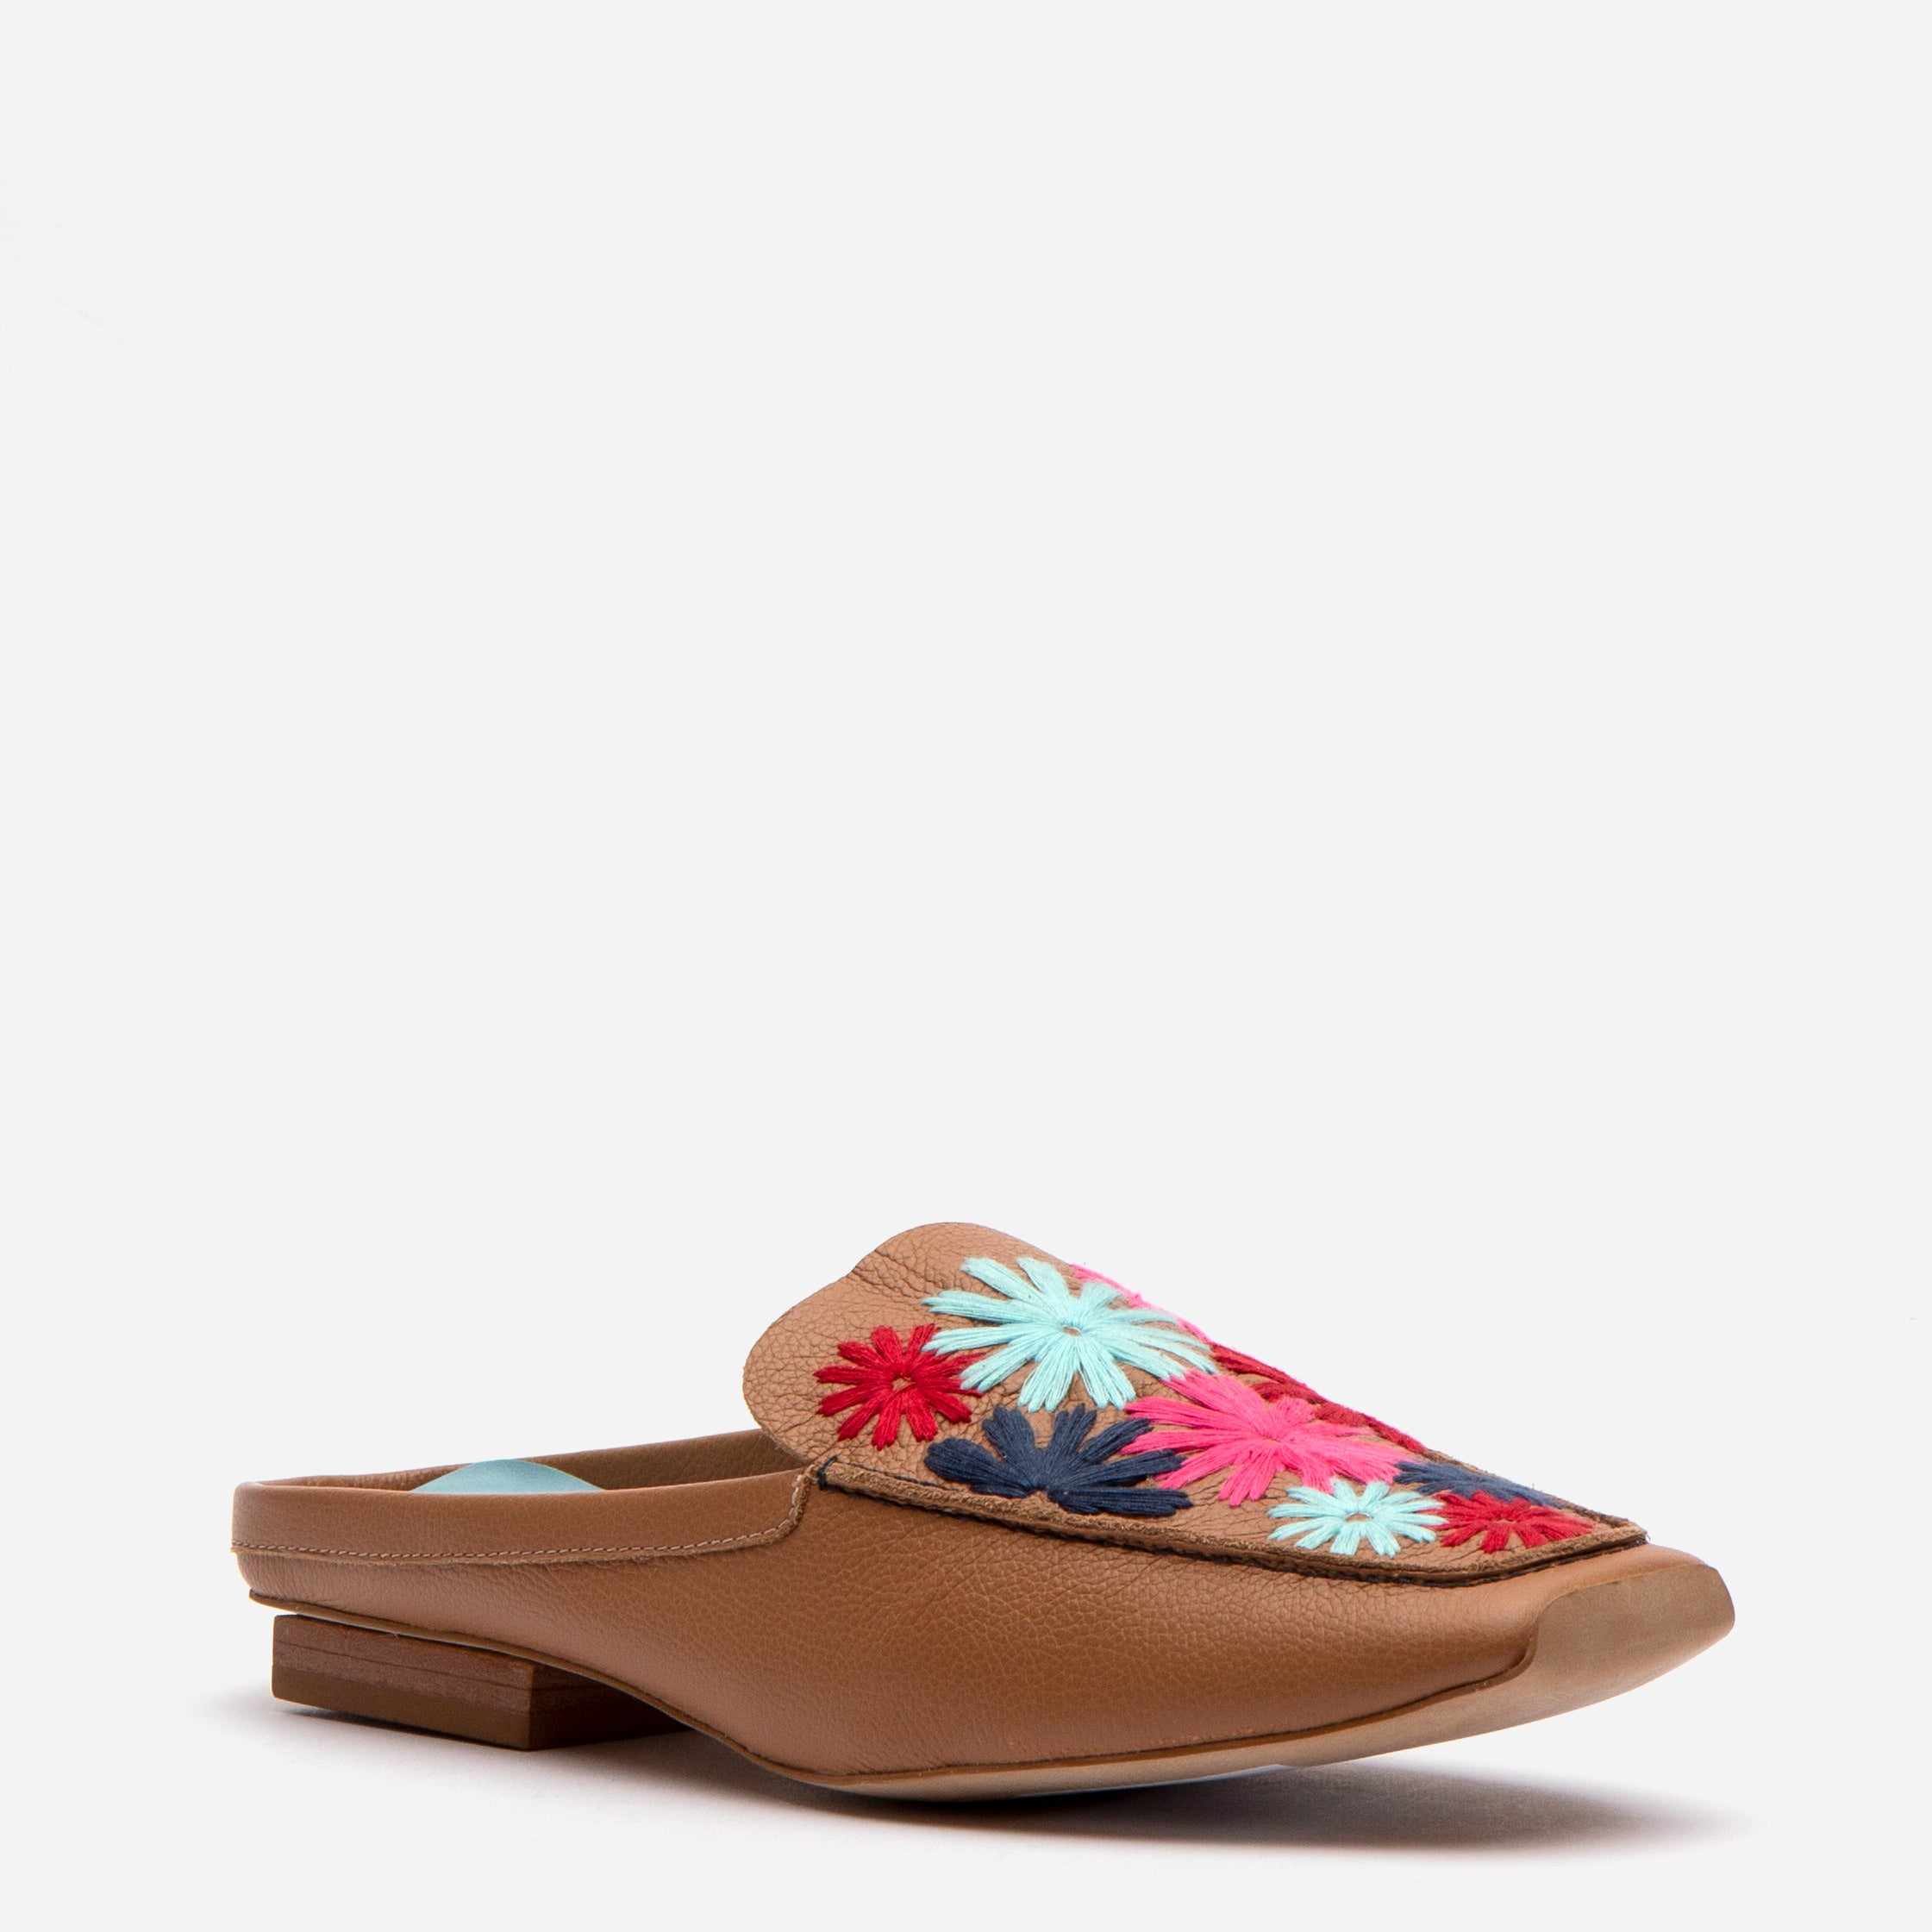 Elyce Mules Floral Embroidery Light Camel